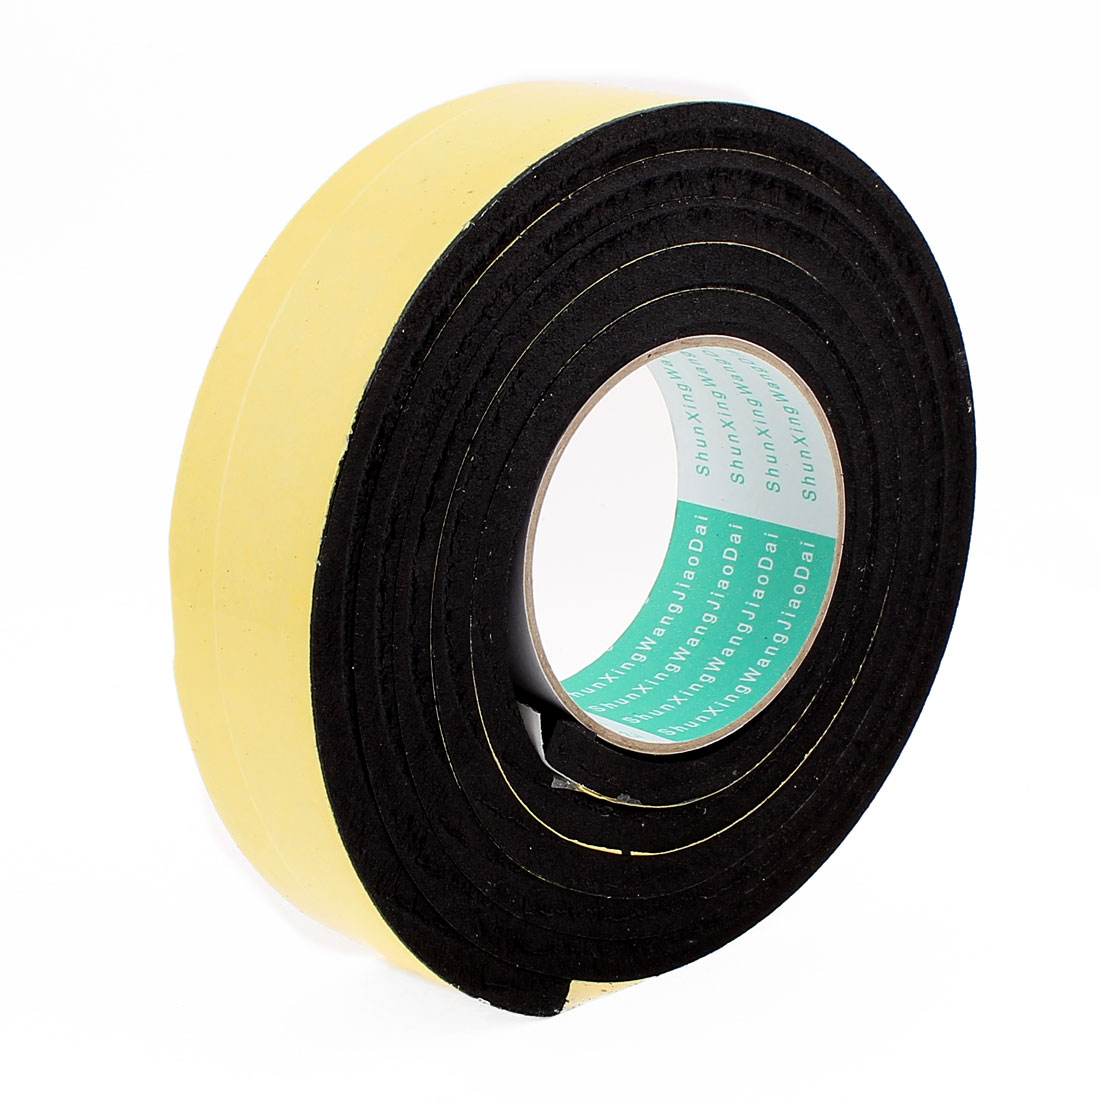 2 Meters 45mm x 8mm Single Side Adhesive EVA Foam Sealing Tap